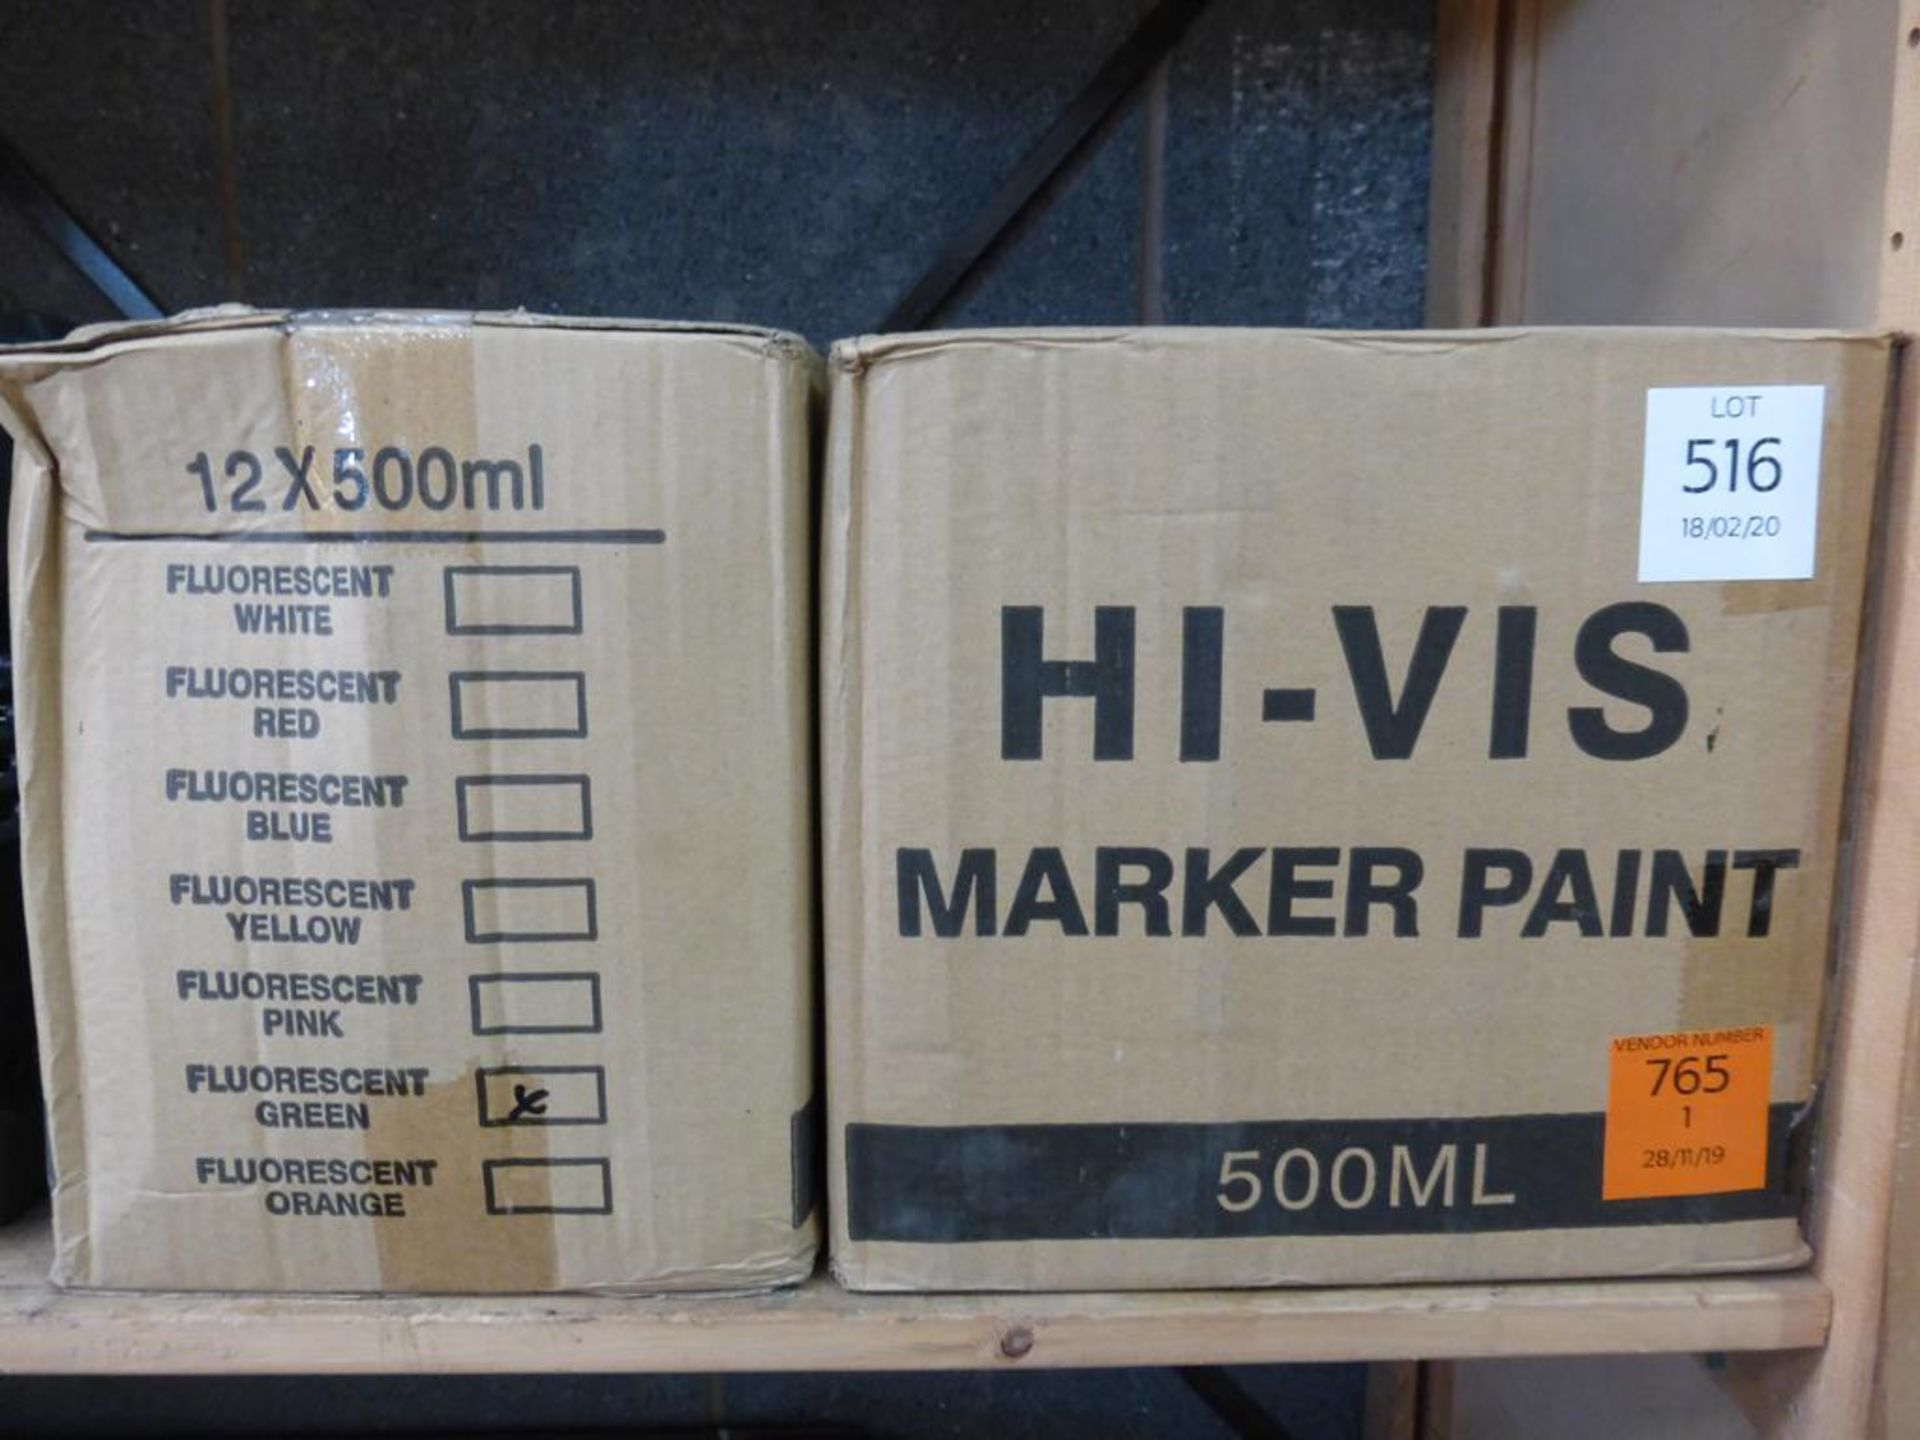 Lot 516 - 2 X Boxes of Hi-Vis Marker Paint, 1 X Green, 1 X Red